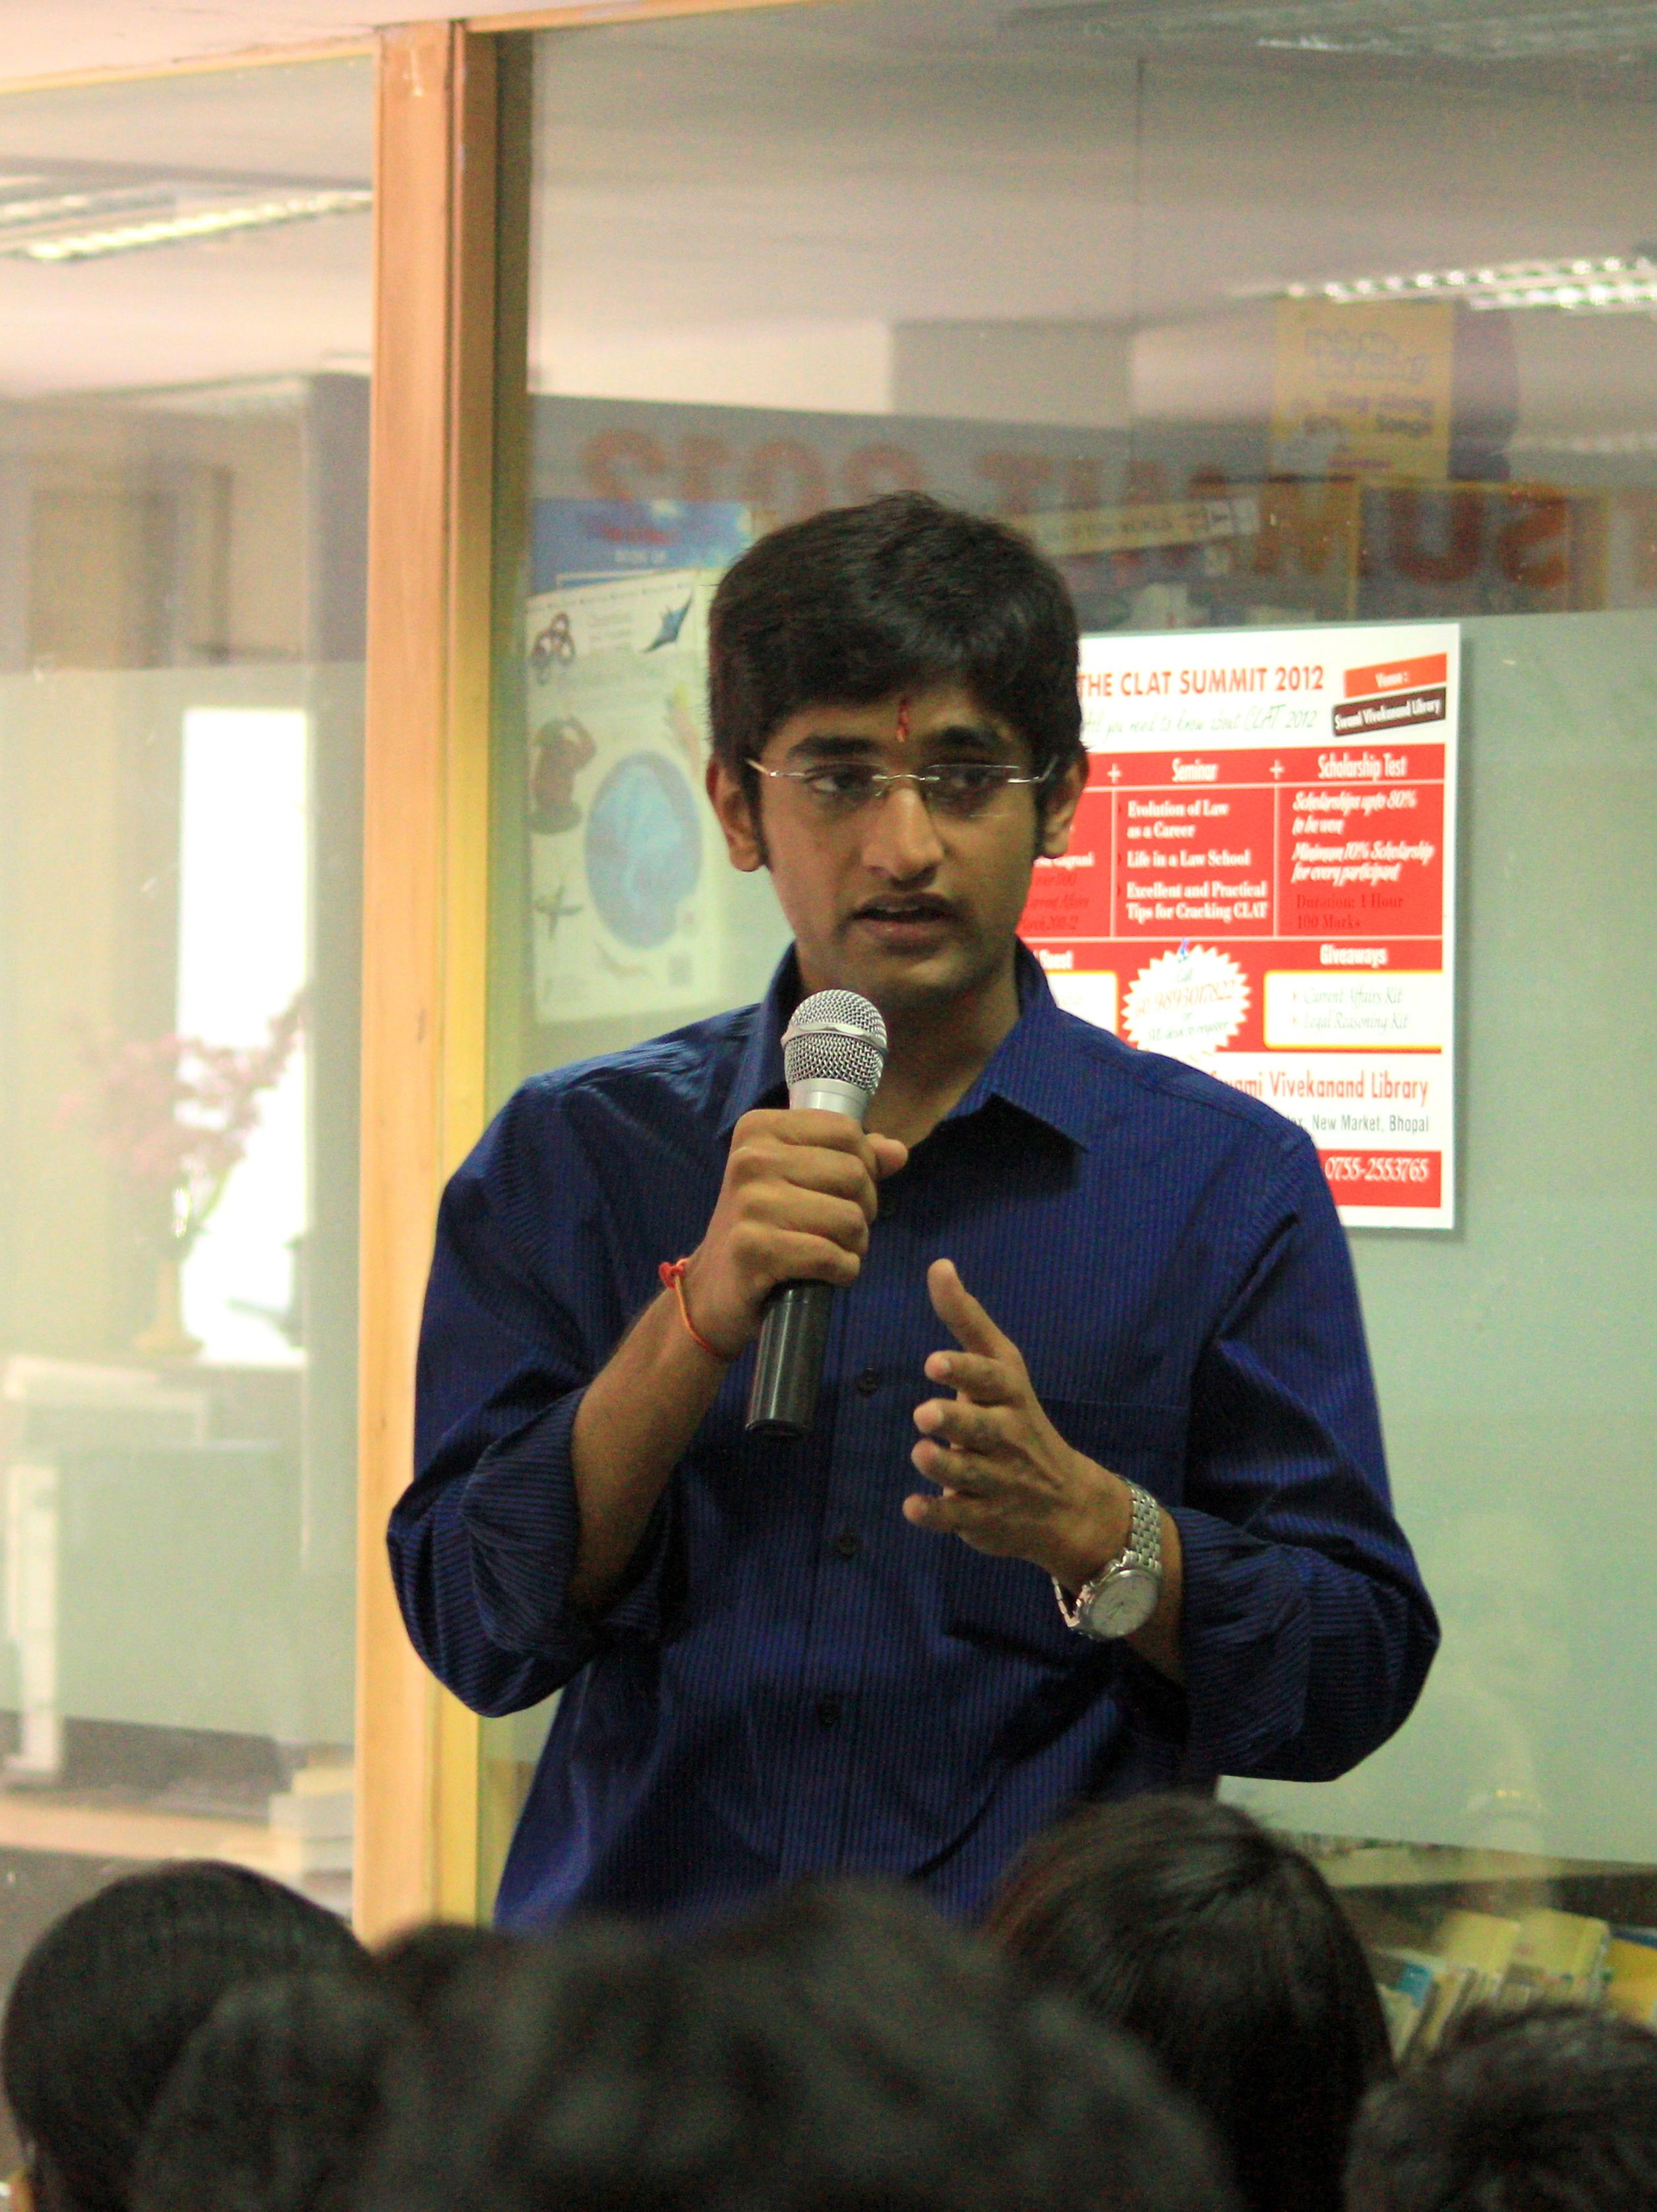 Career Talk With Harsh Gagrani of LegalEdge Tutorials: Publishing A Book; Orginality, Honesty & Awesomeness